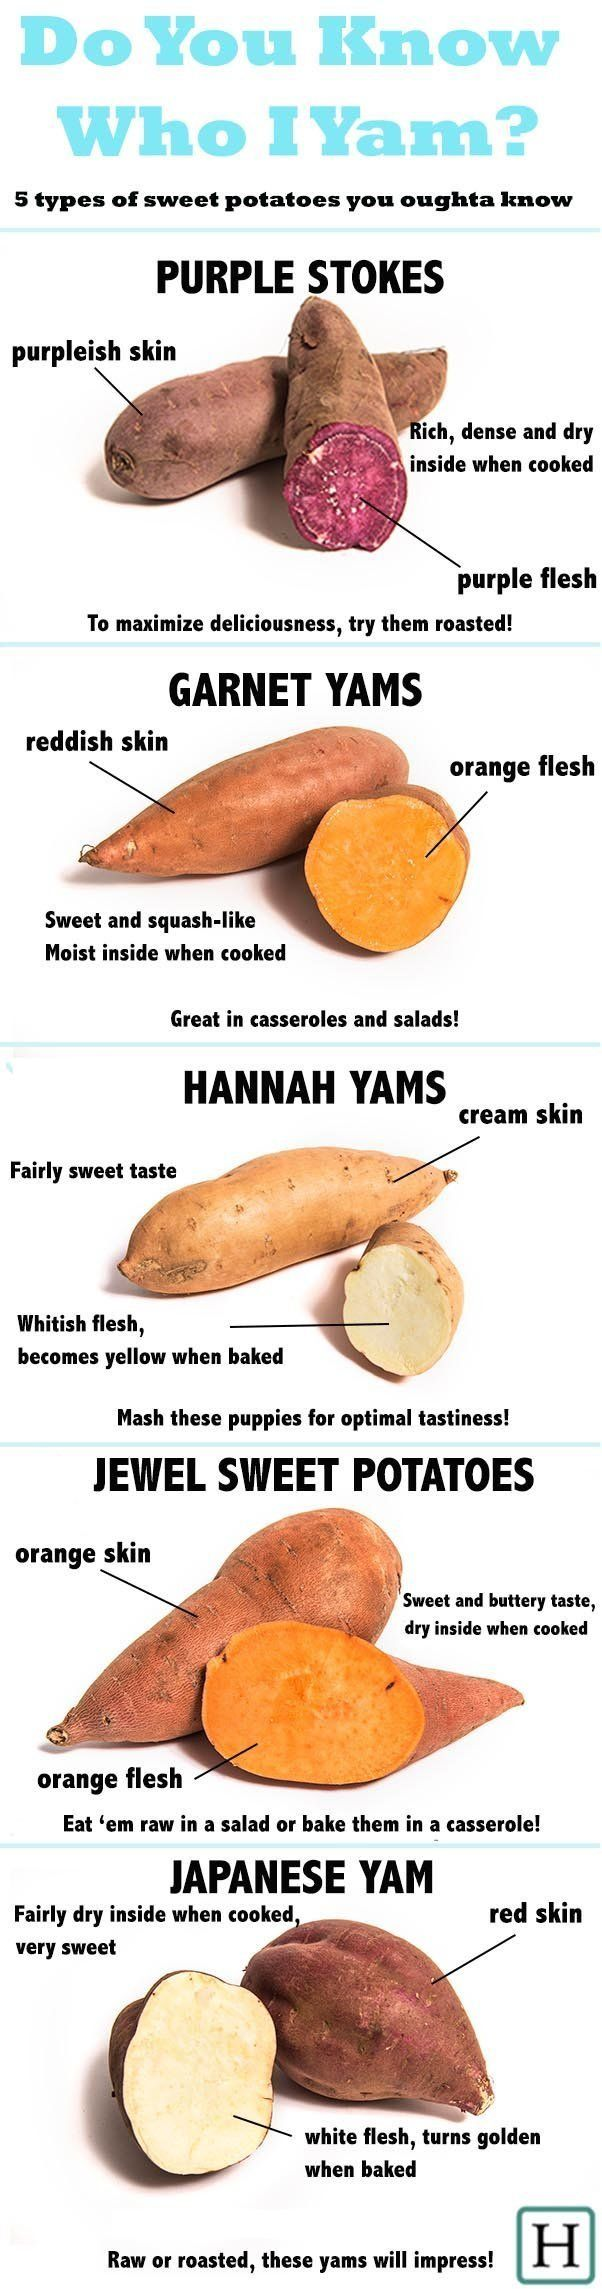 The special kinds of sweet potatoes and how to eat each one